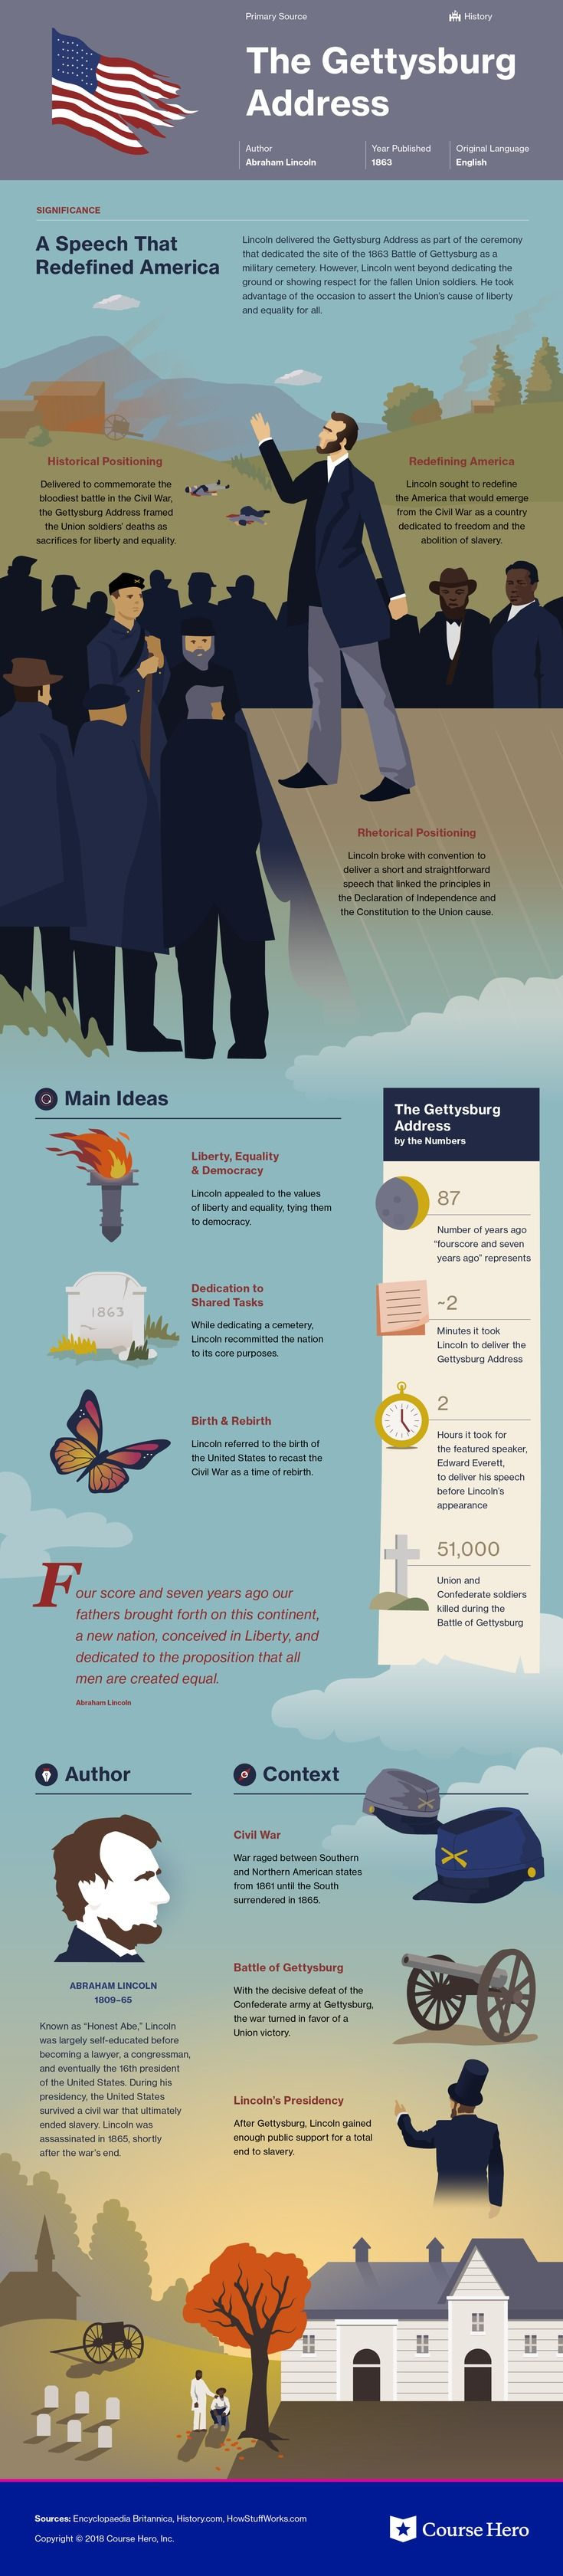 This @CourseHero infographic on The Gettysburg Address is both visually stunning and informative!